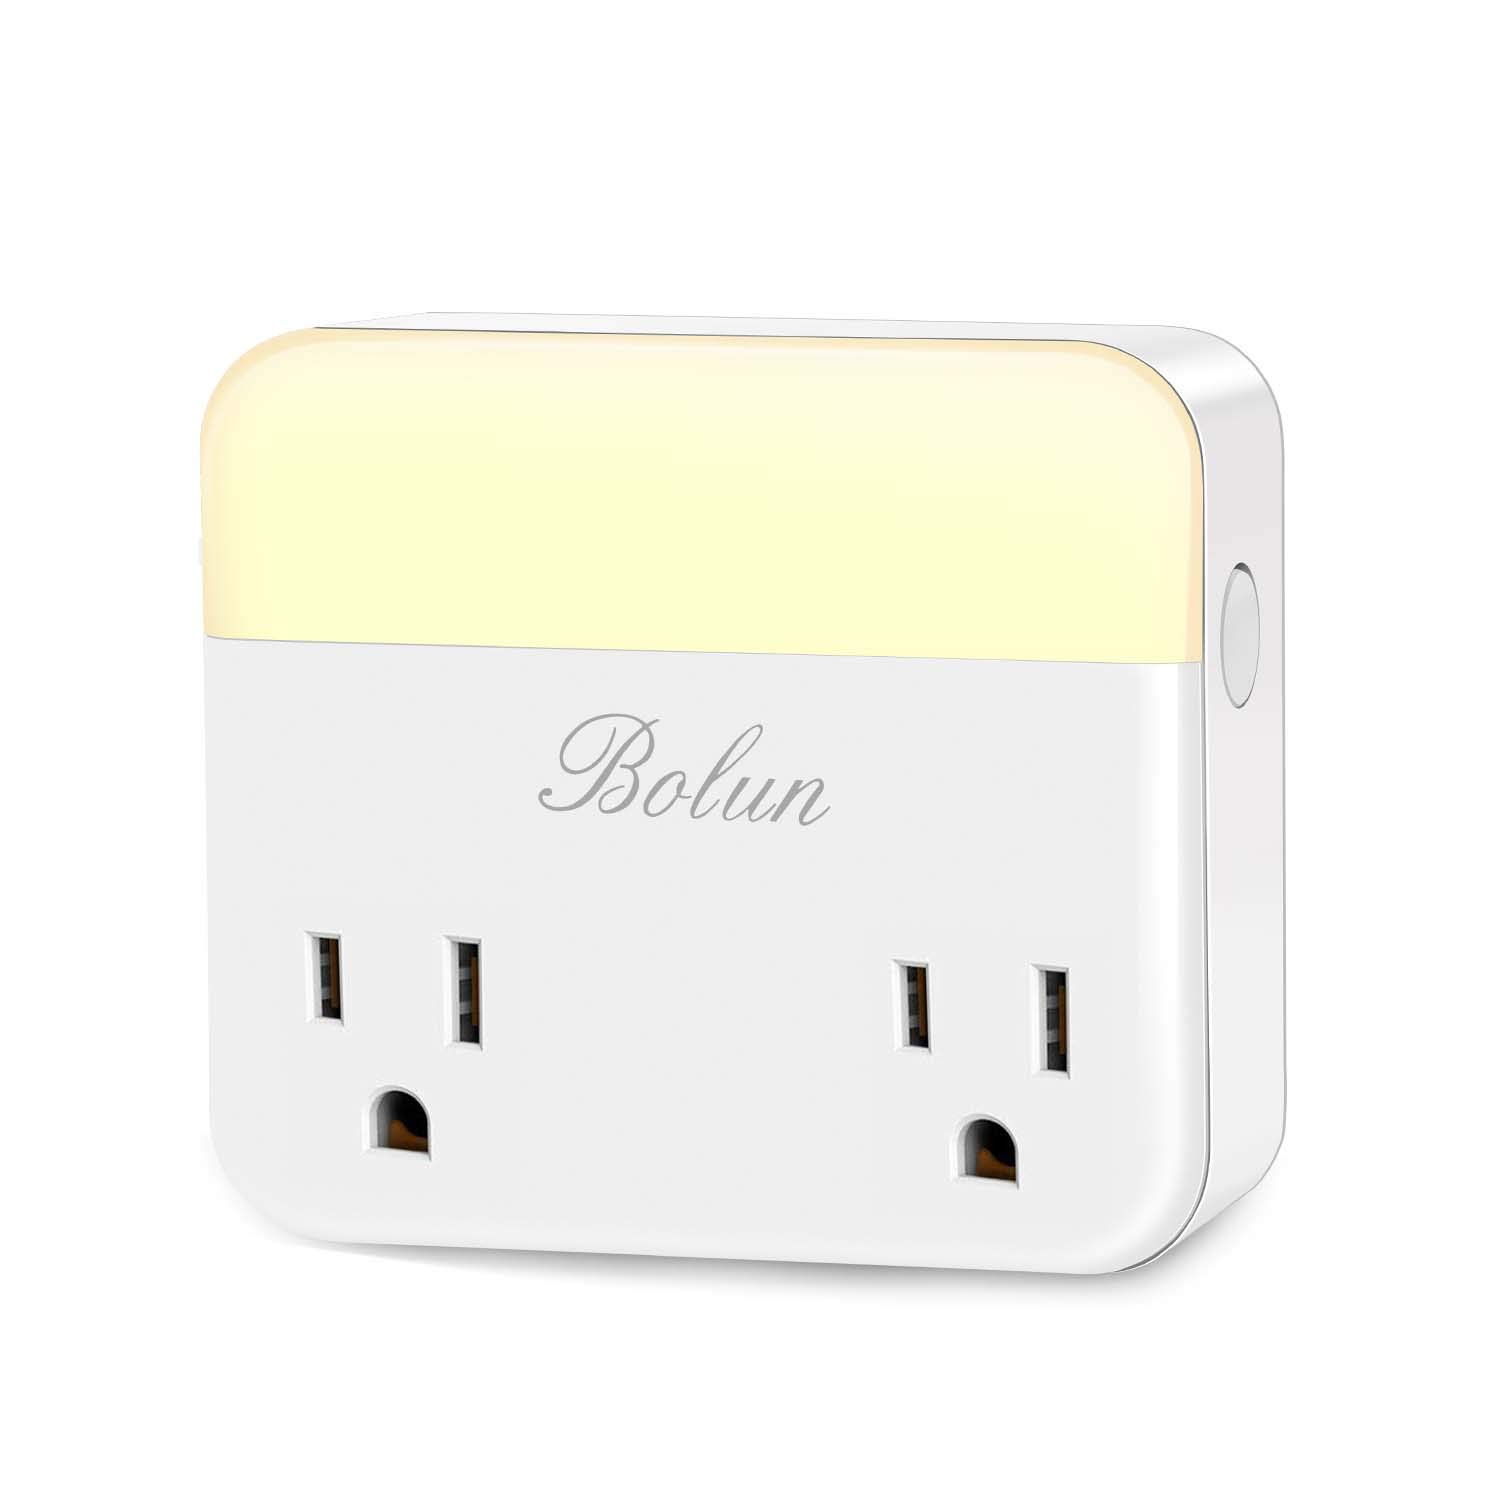 BOLUN L Smart Plug WiFi Night Light, Works with Alexa, Echo, Google Home IFTTT, Wireless Remote Control Outlet/Timer Function, Adjustable Brightness (0%-100%)- 1 Pack